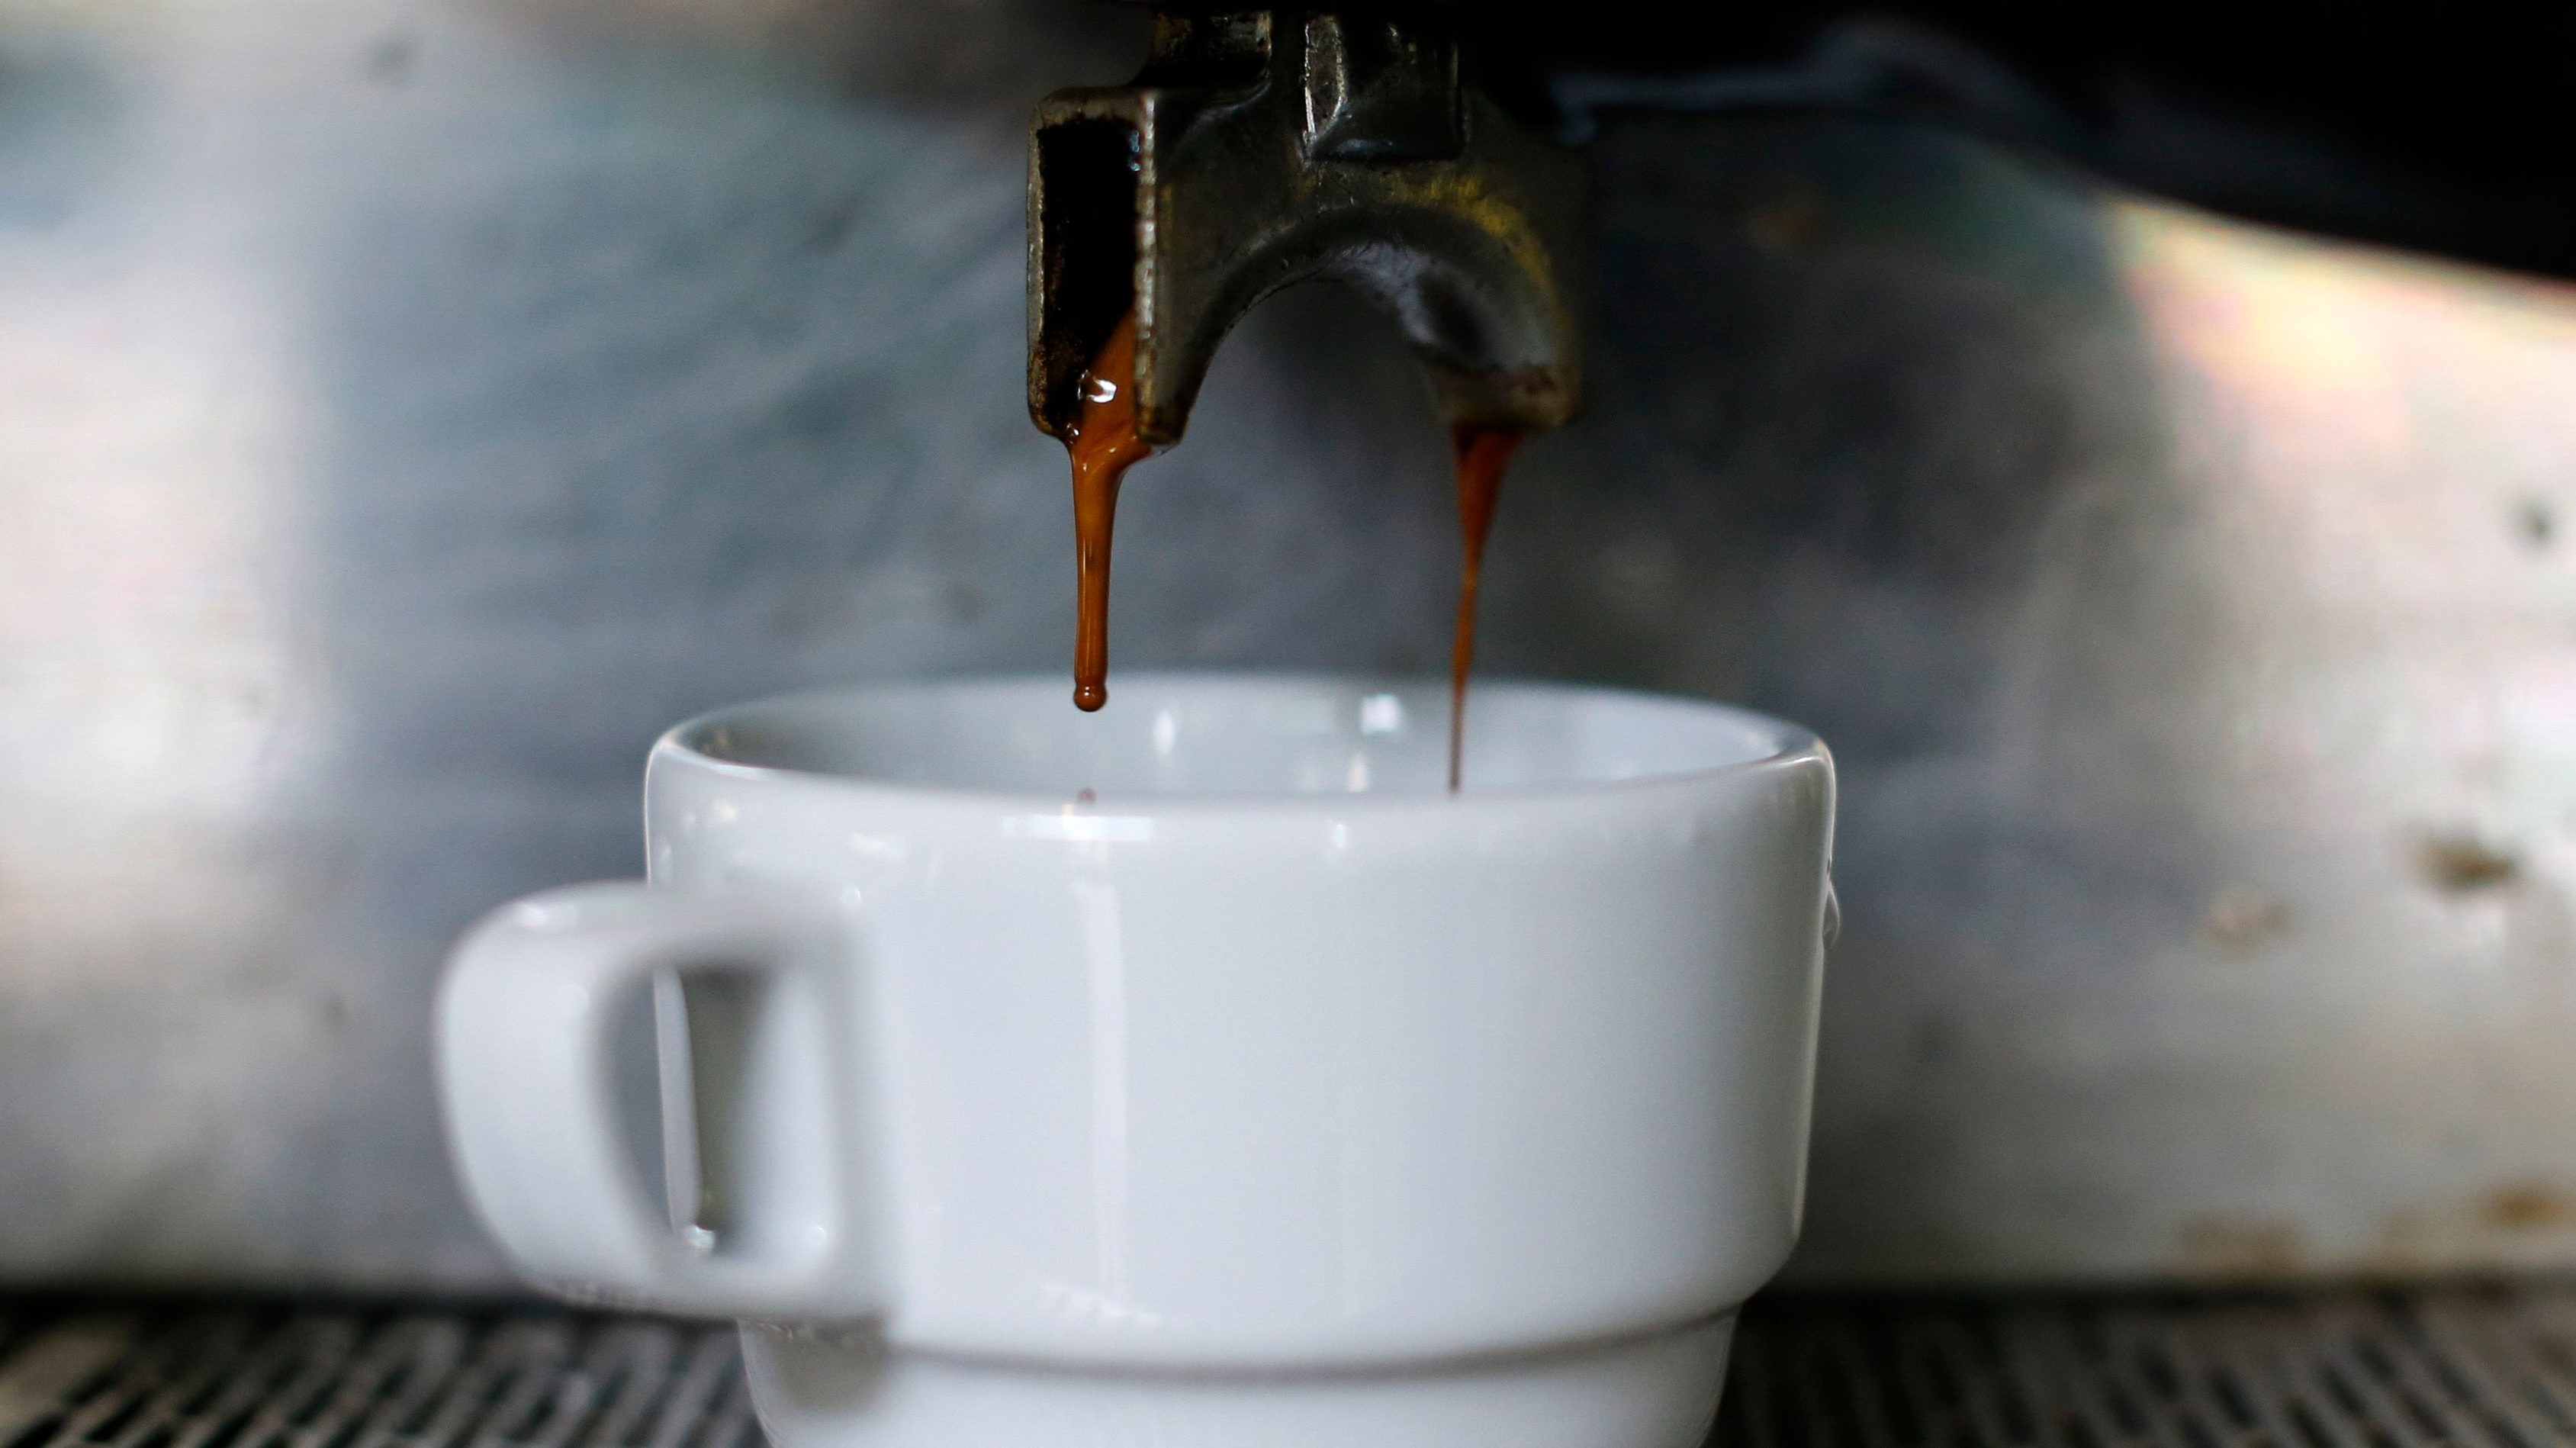 A cup of coffee is served at a coffee shop in Caracas February 26, 2015. Venezuela, once a proud exporter of premium coffee, has been reduced to swapping crude oil for growing volumes of Nicaraguan coffee beans to make sure worsening economic turmoil does not prevent people from getting their caffeine fix. For the first time on record, coffee imports this year will exceed the bean output of Venezuela's centuries-old coffee industry, according to U.S. government estimates. The South American country's shift from net coffee exporter to substantial importer has altered flows in regional markets, boosting prices for some varieties of coffee. Picture taken February 26, 2015. REUTERS/Jorge Silva (VENEZUELA - Tags: SOCIETY FOOD BUSINESS COMMODITIES) - GM1EB3201W601